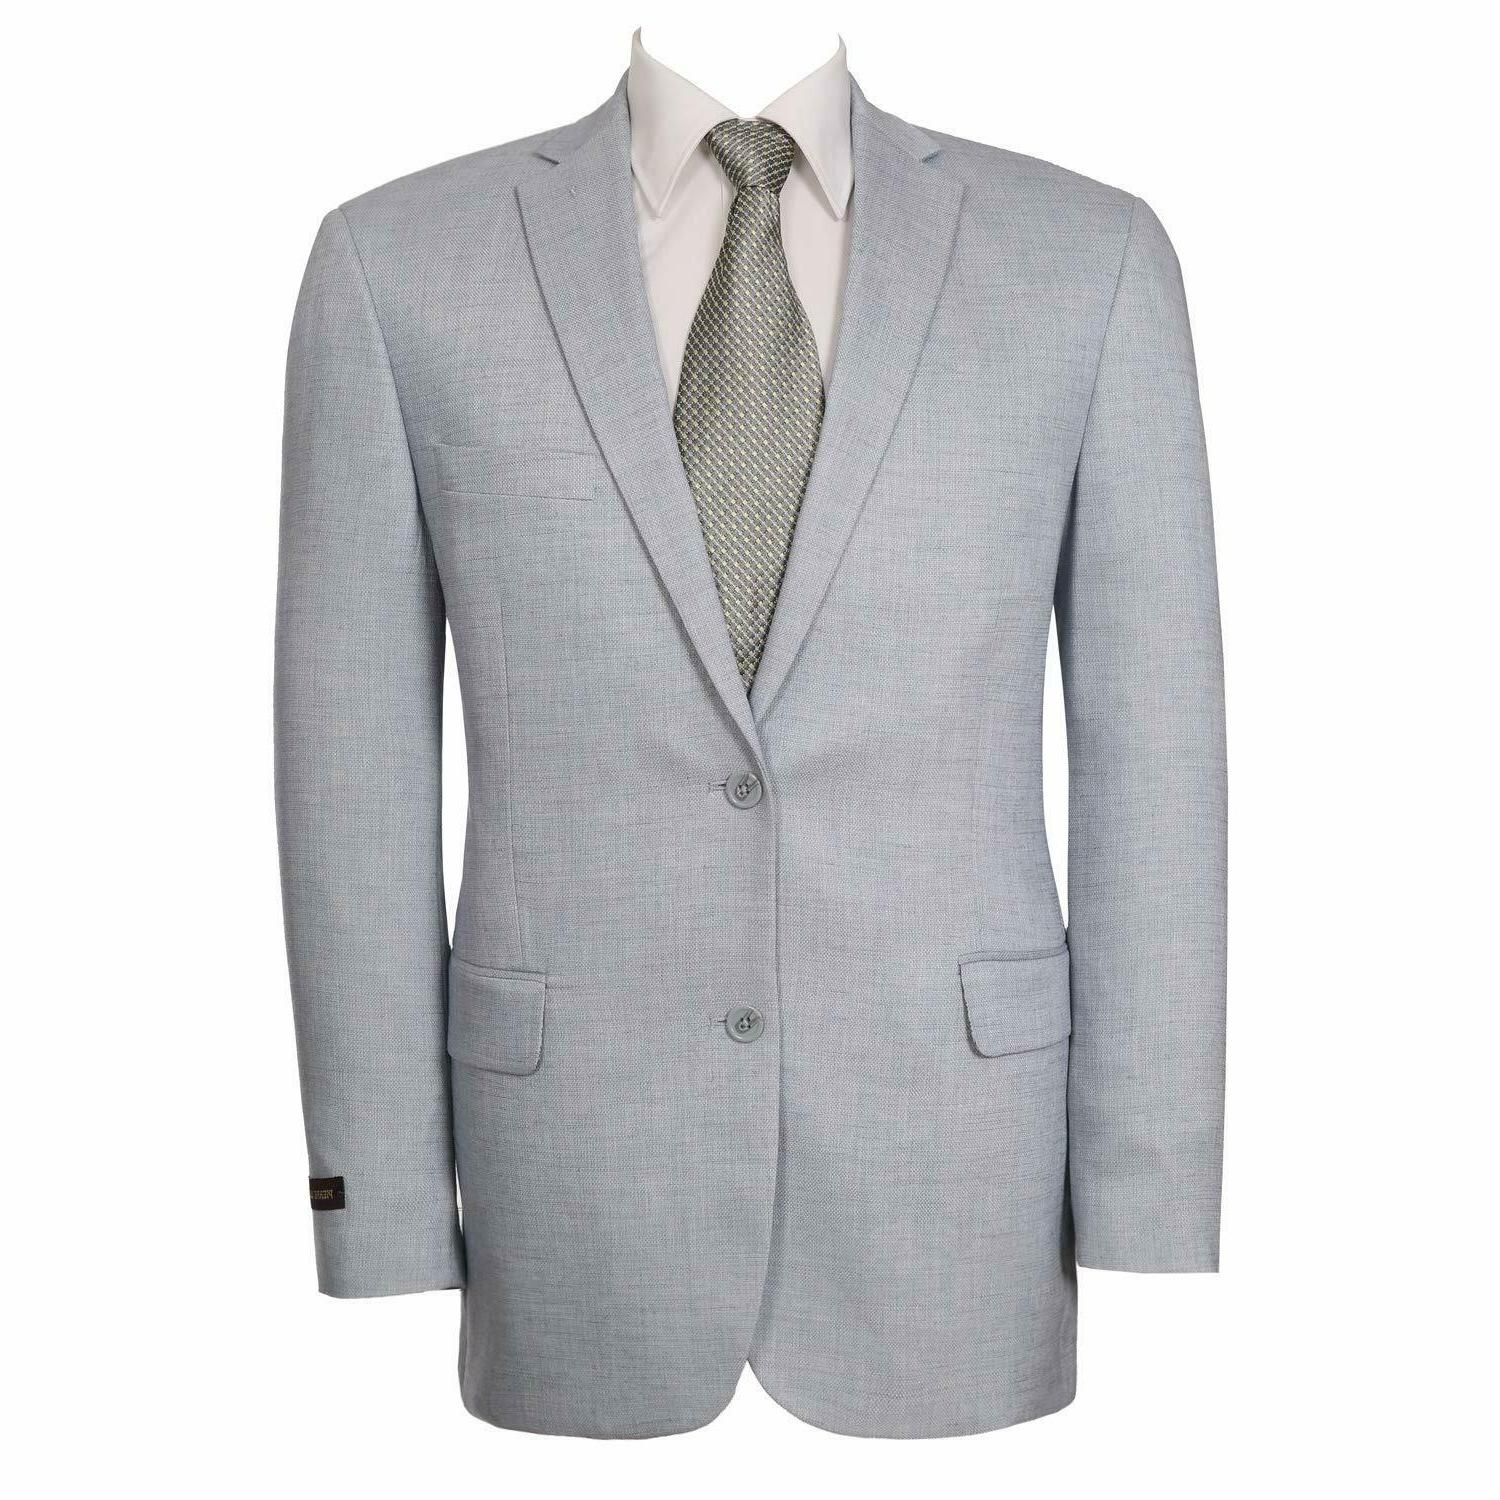 P&L Modern Two-Button Suit Separate Jacket Dove Gray